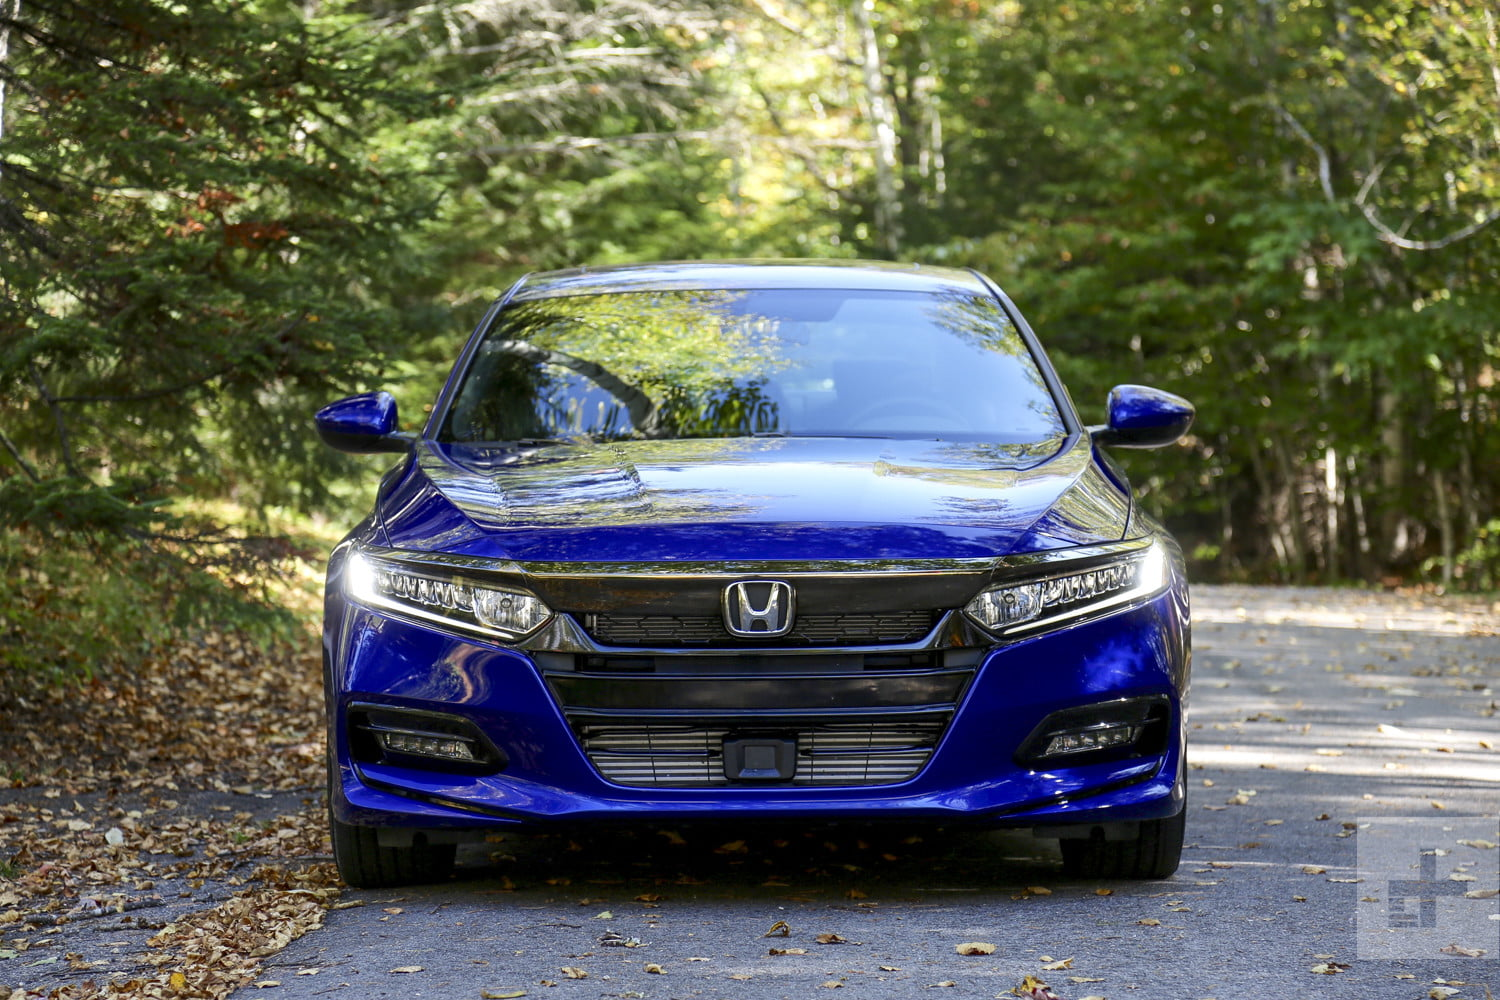 2018 Honda Accord First Drive Review | Pictures, Specs ...